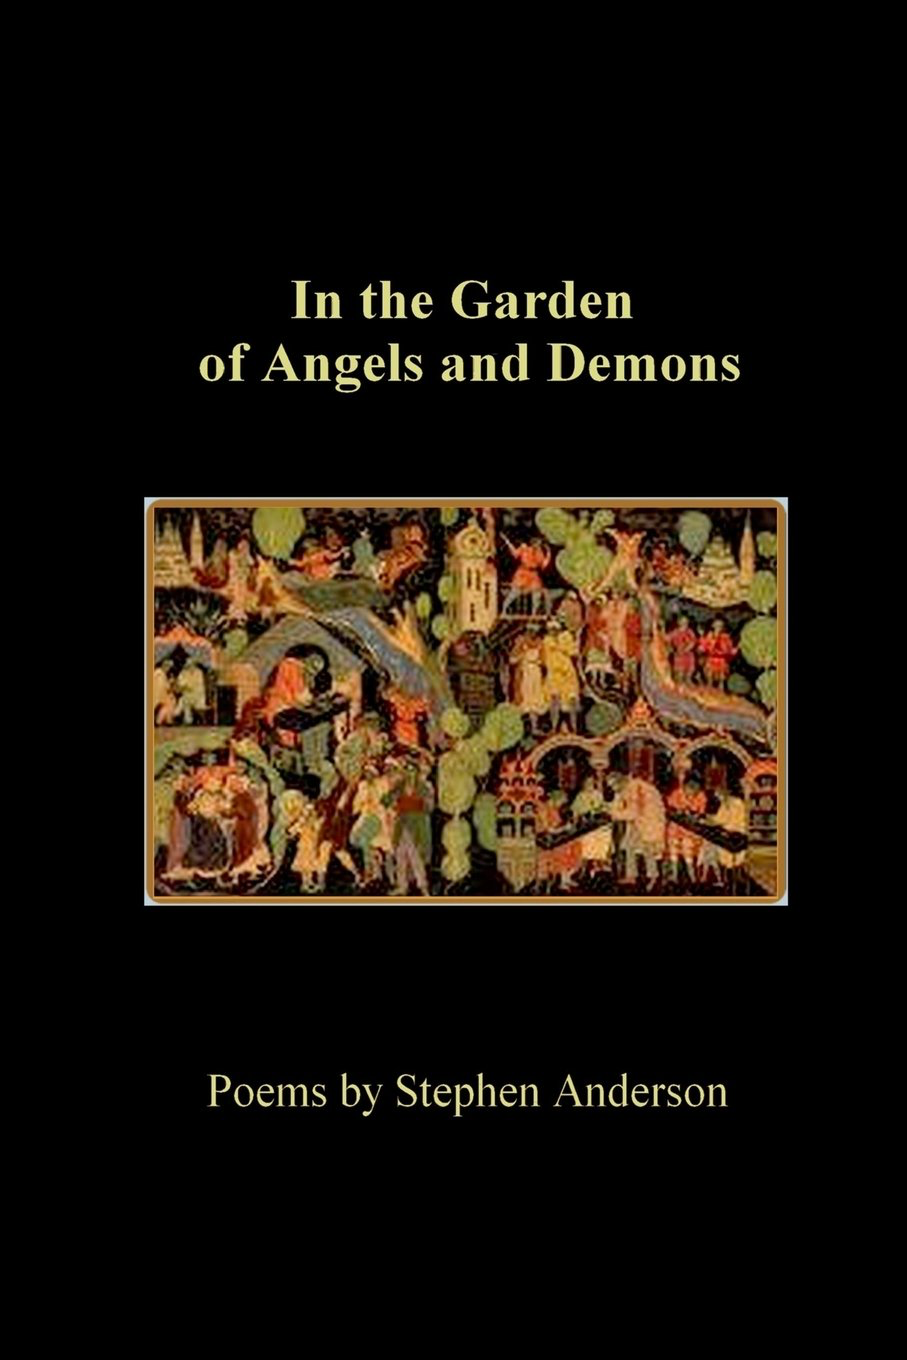 In the Garden of Angels and Demons